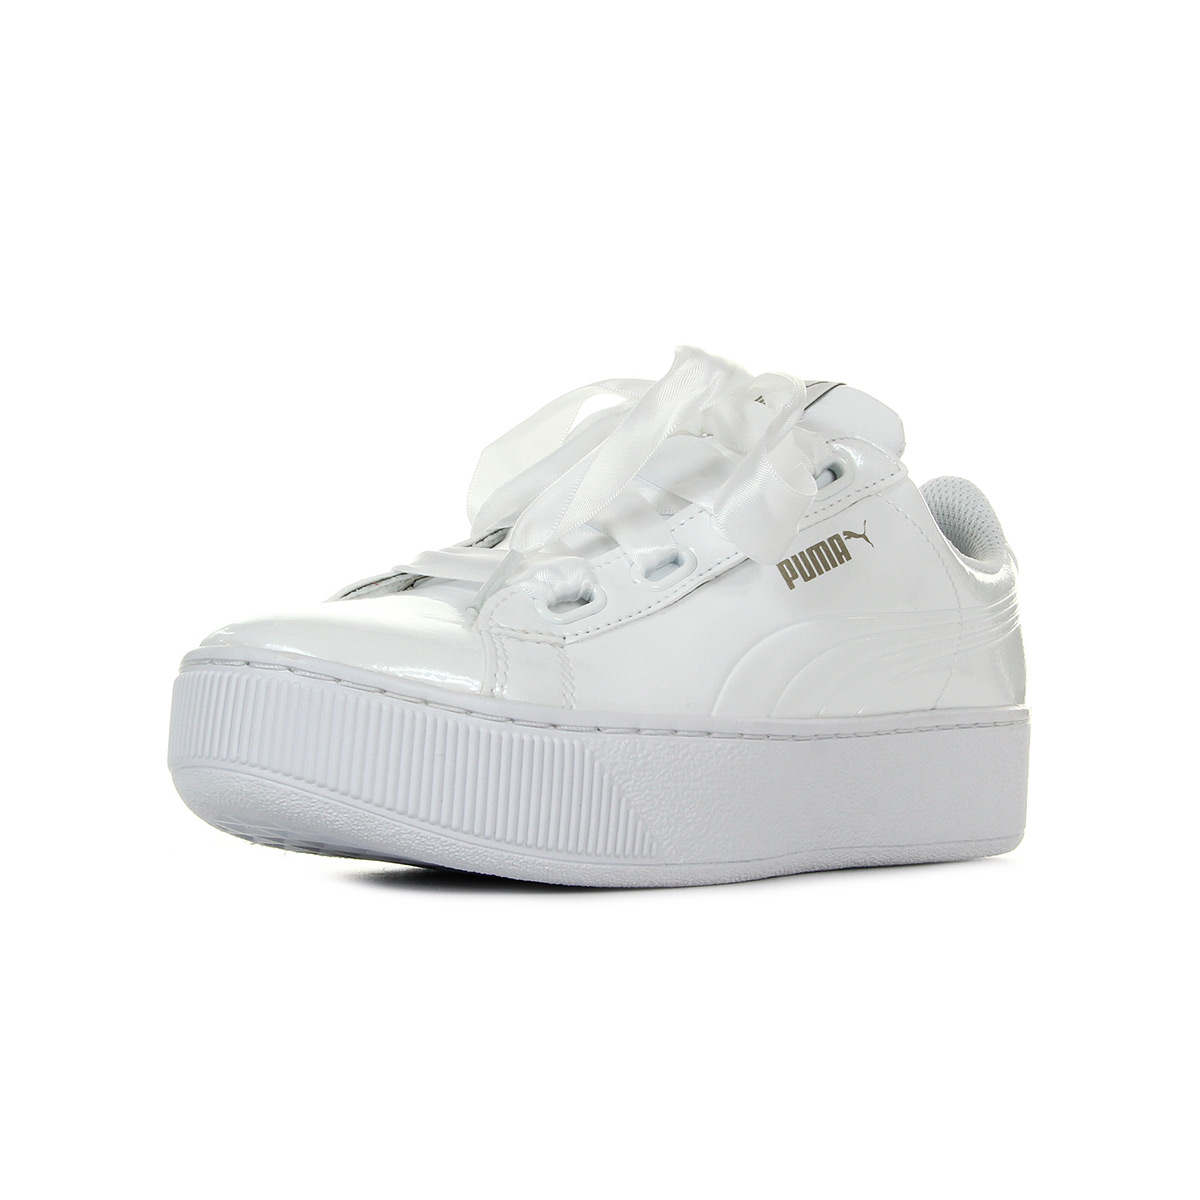 Chaussures Baskets Puma femme Vikky Platform Ribbon taille Blanc Blanche